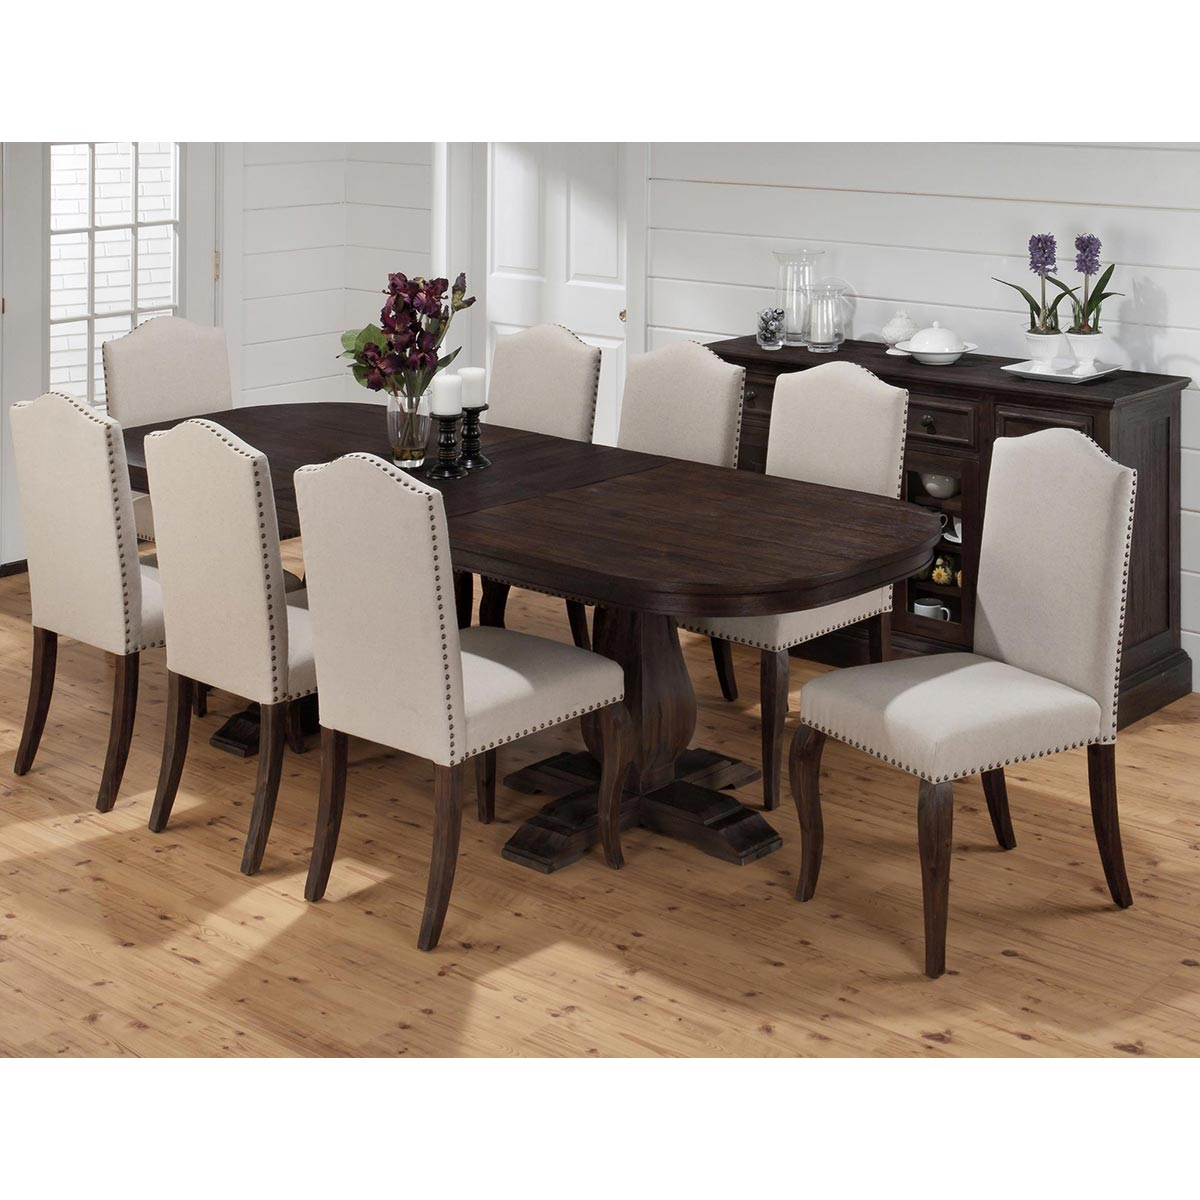 Astounding Grand Terrace Traditional Dining Table In Dark Brown Cherry Hand Scraped Finish W 8 Upholstered Cha By Jofran Lamtechconsult Wood Chair Design Ideas Lamtechconsultcom